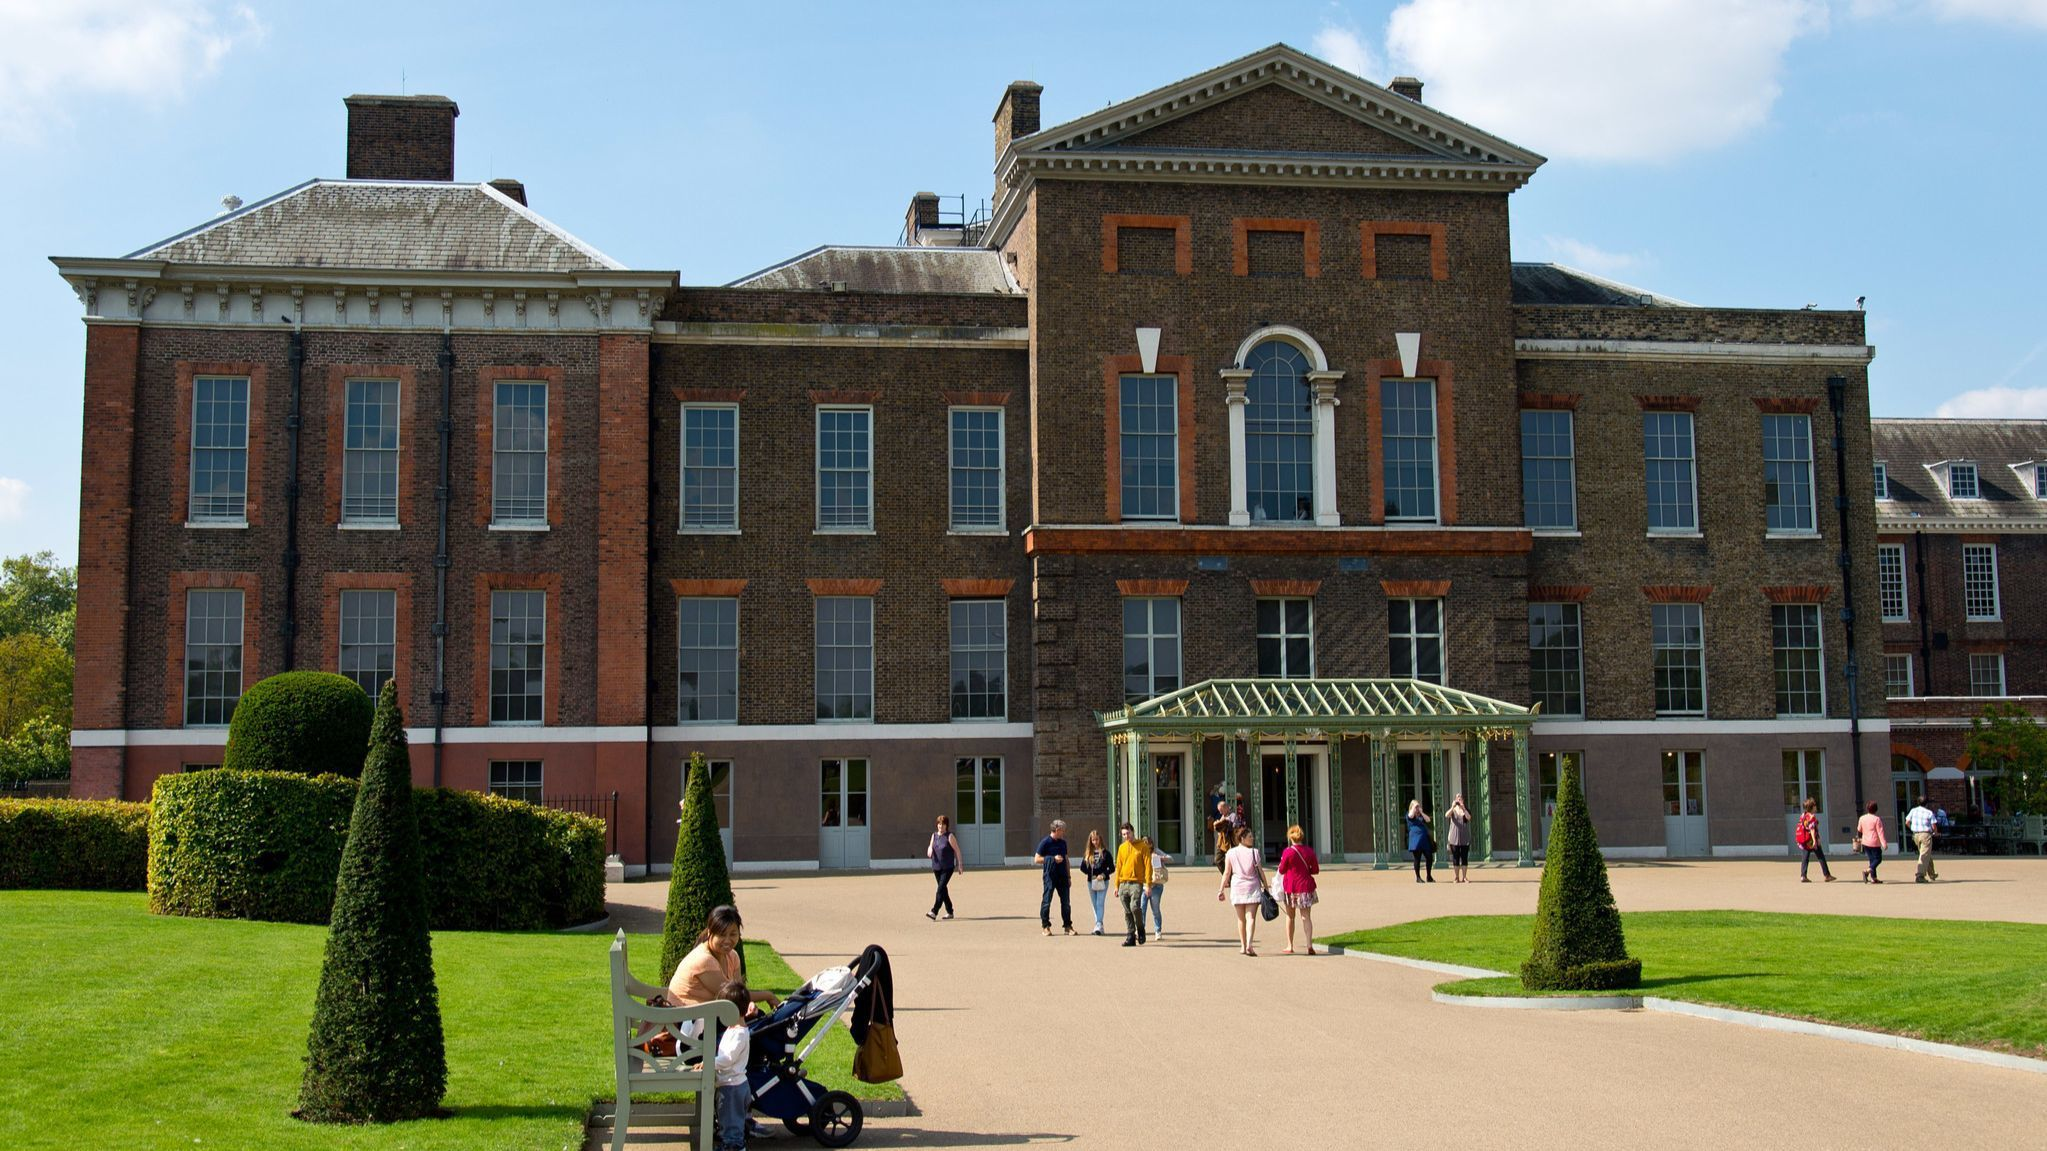 A view of Kensington Palace.